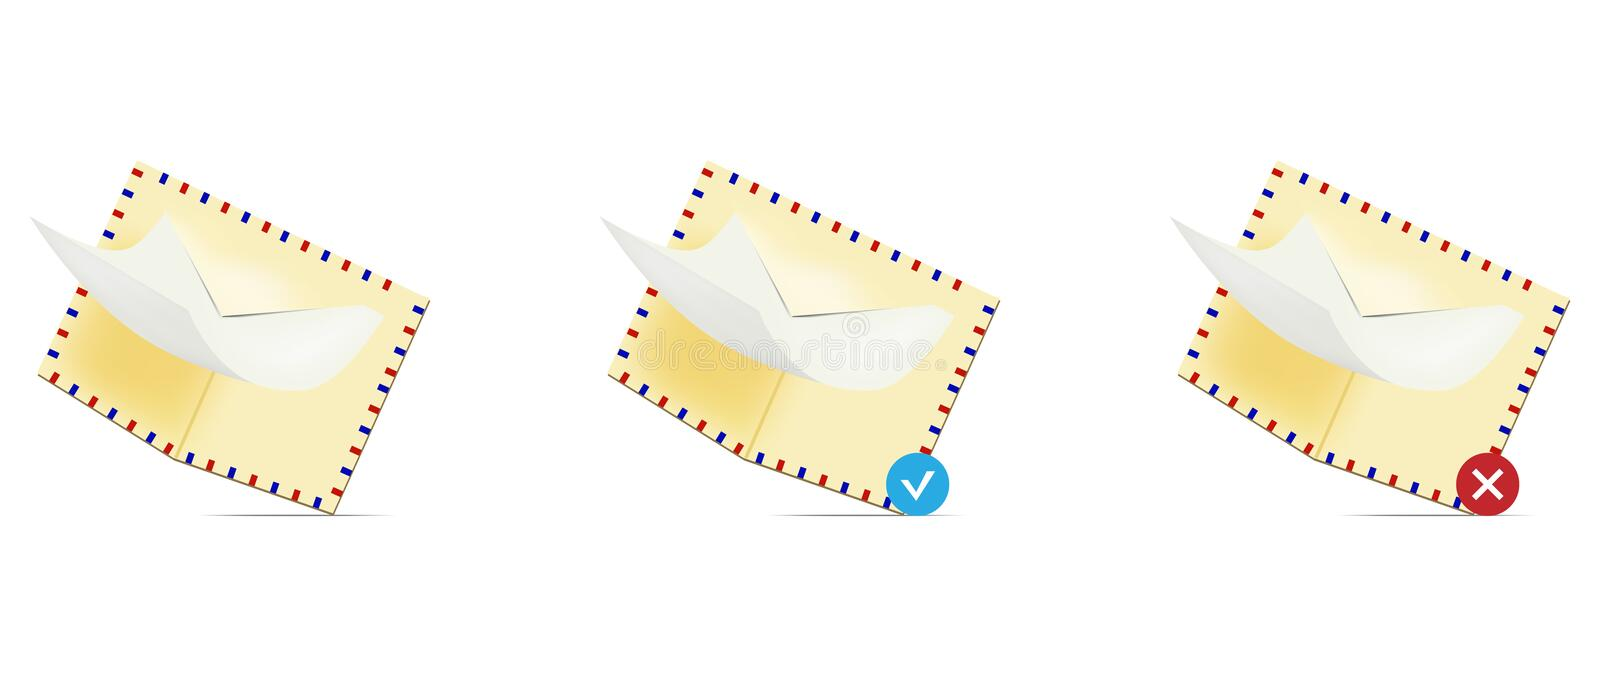 Download Email icon set stock illustration. Illustration of email - 12135768